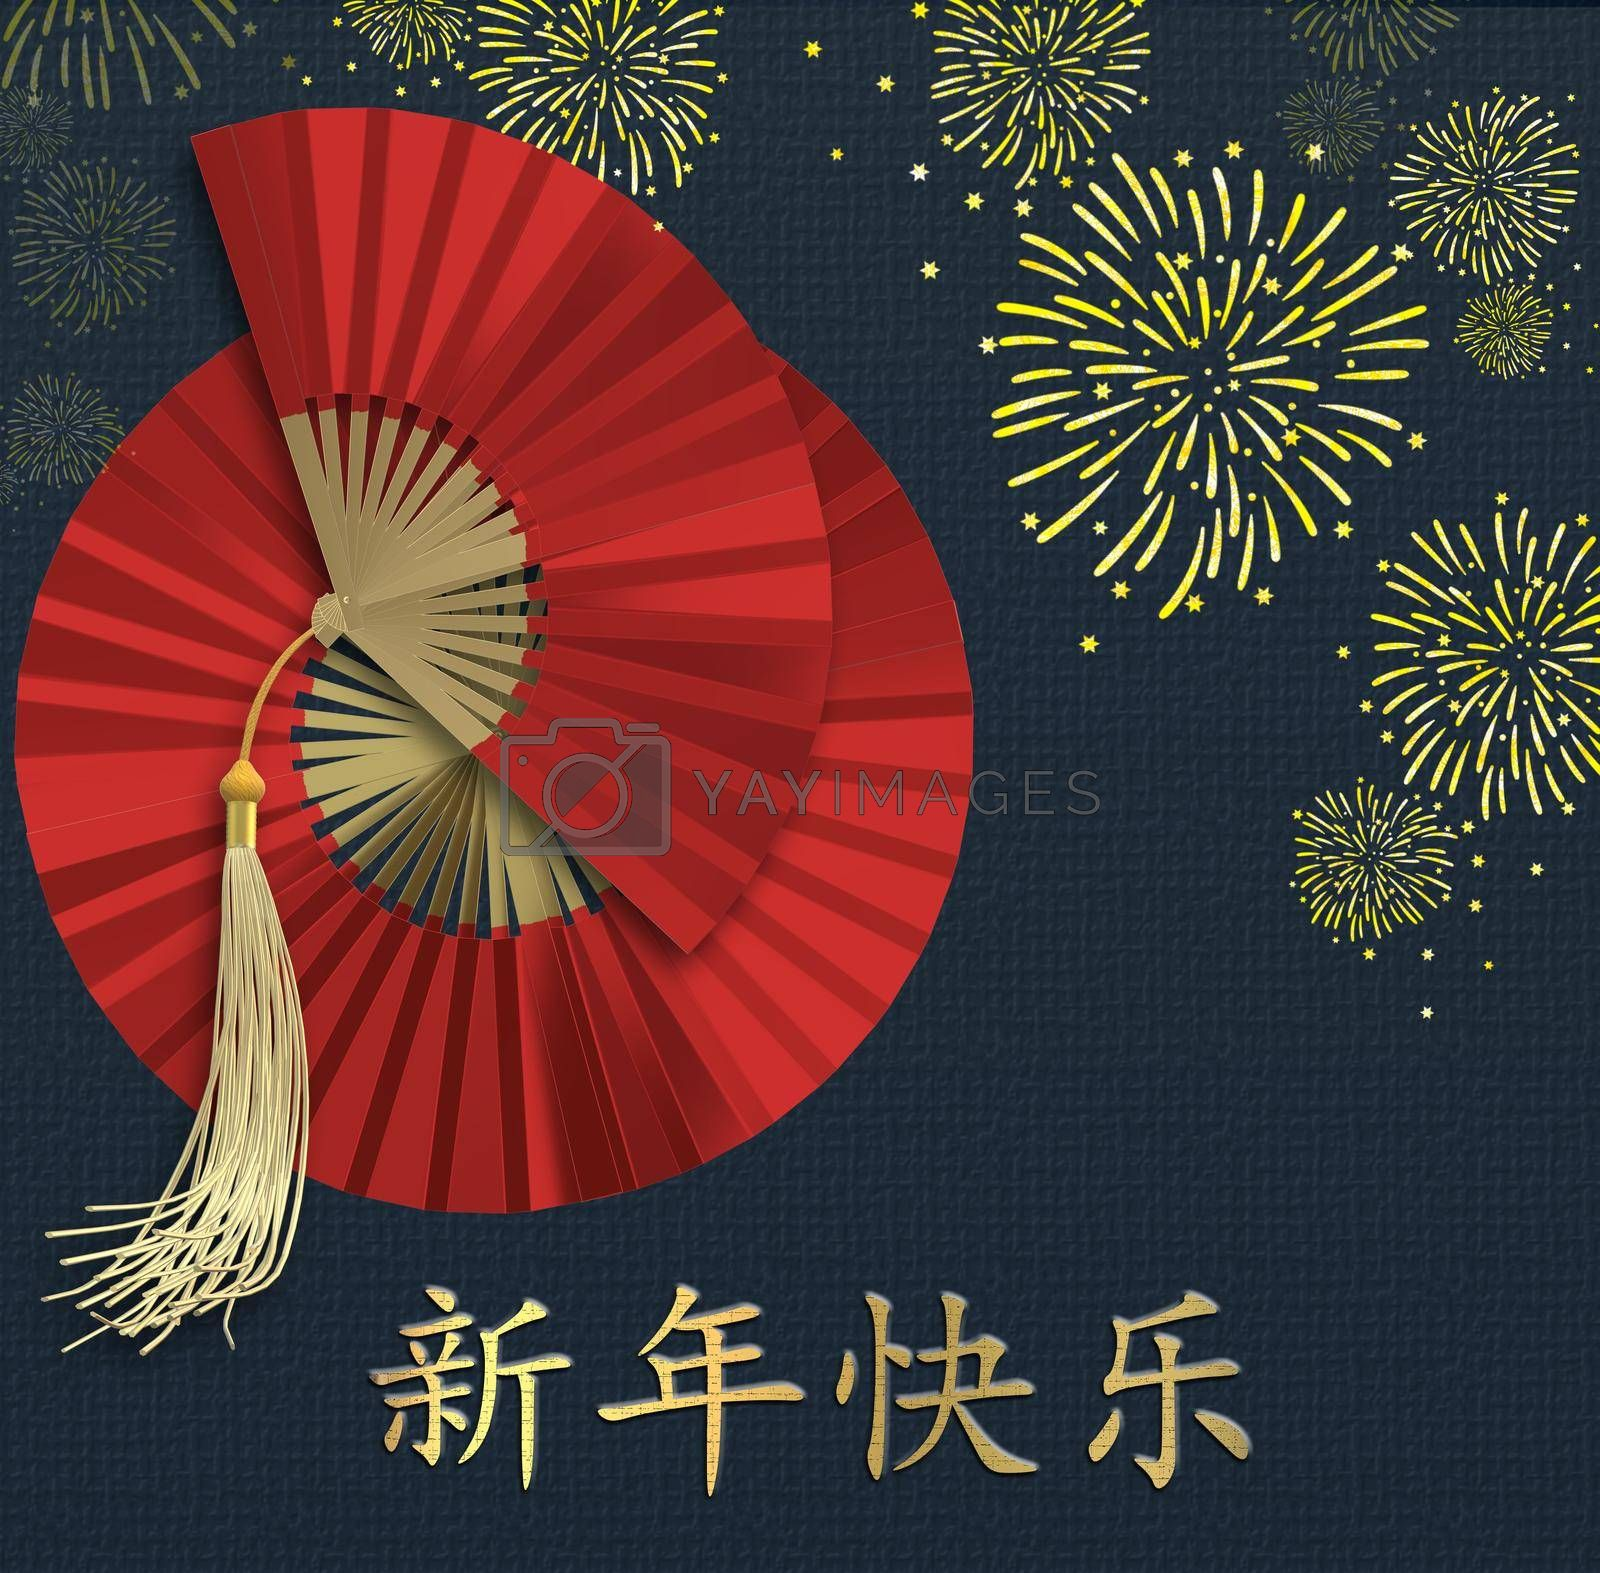 Happy Chinese New Year. Red paper fans, fire work over blue background. Traditional Holiday Lunar New Year. Gold text Chinese translation Happy New Year. 3D illustration